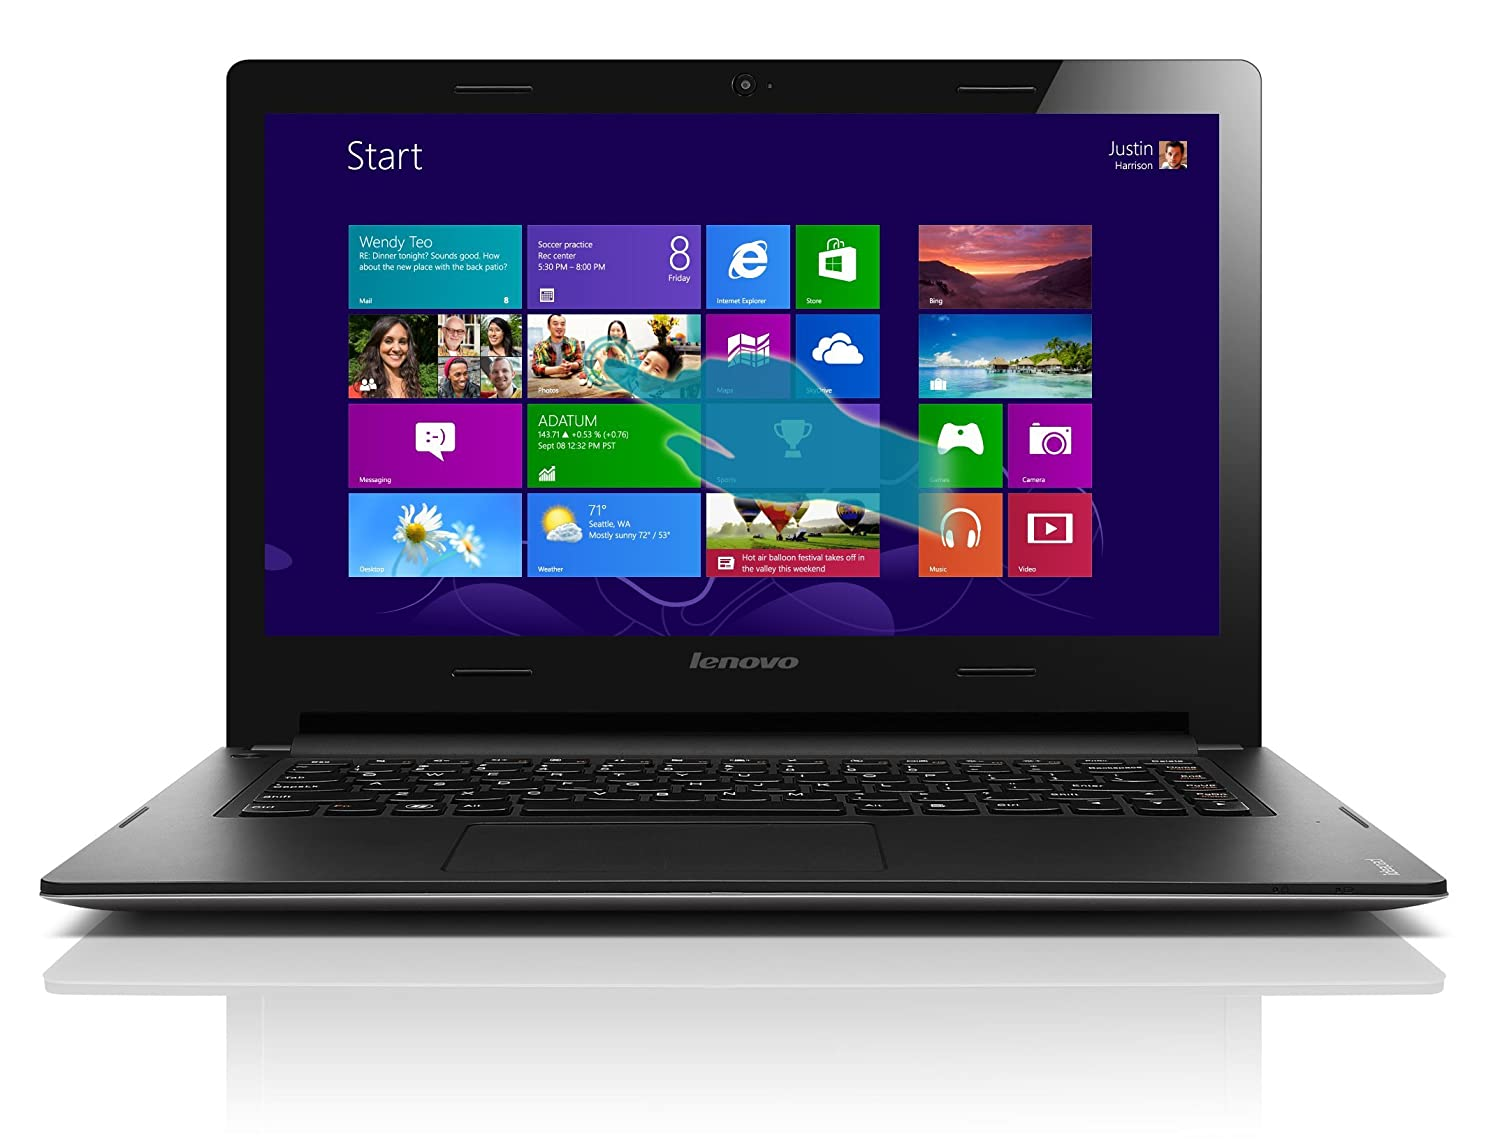 Lenovo IdeaPad S415 59385549 14-Inch Touchscreen Laptop